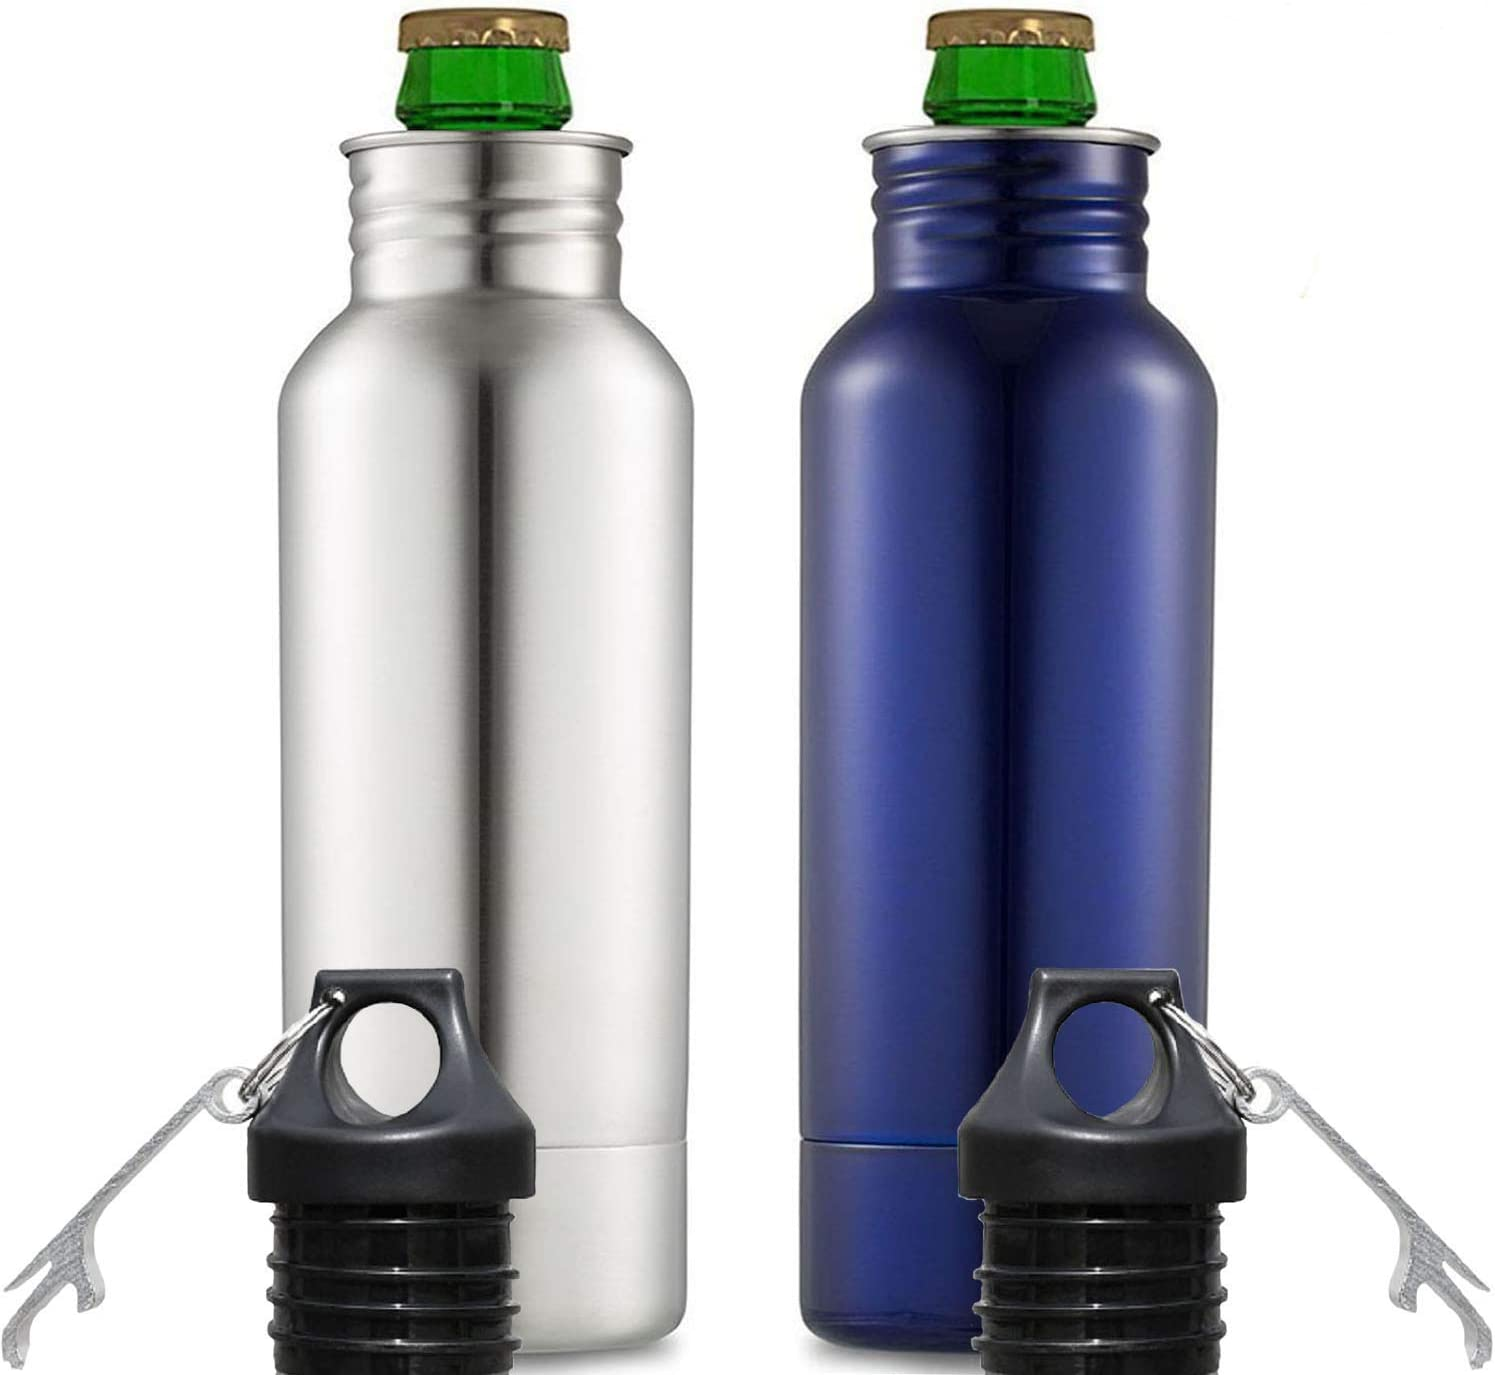 12OZ Beer Bottle Cooler Keeper Can//Bottle Holder 304 stainless steel Double Wall